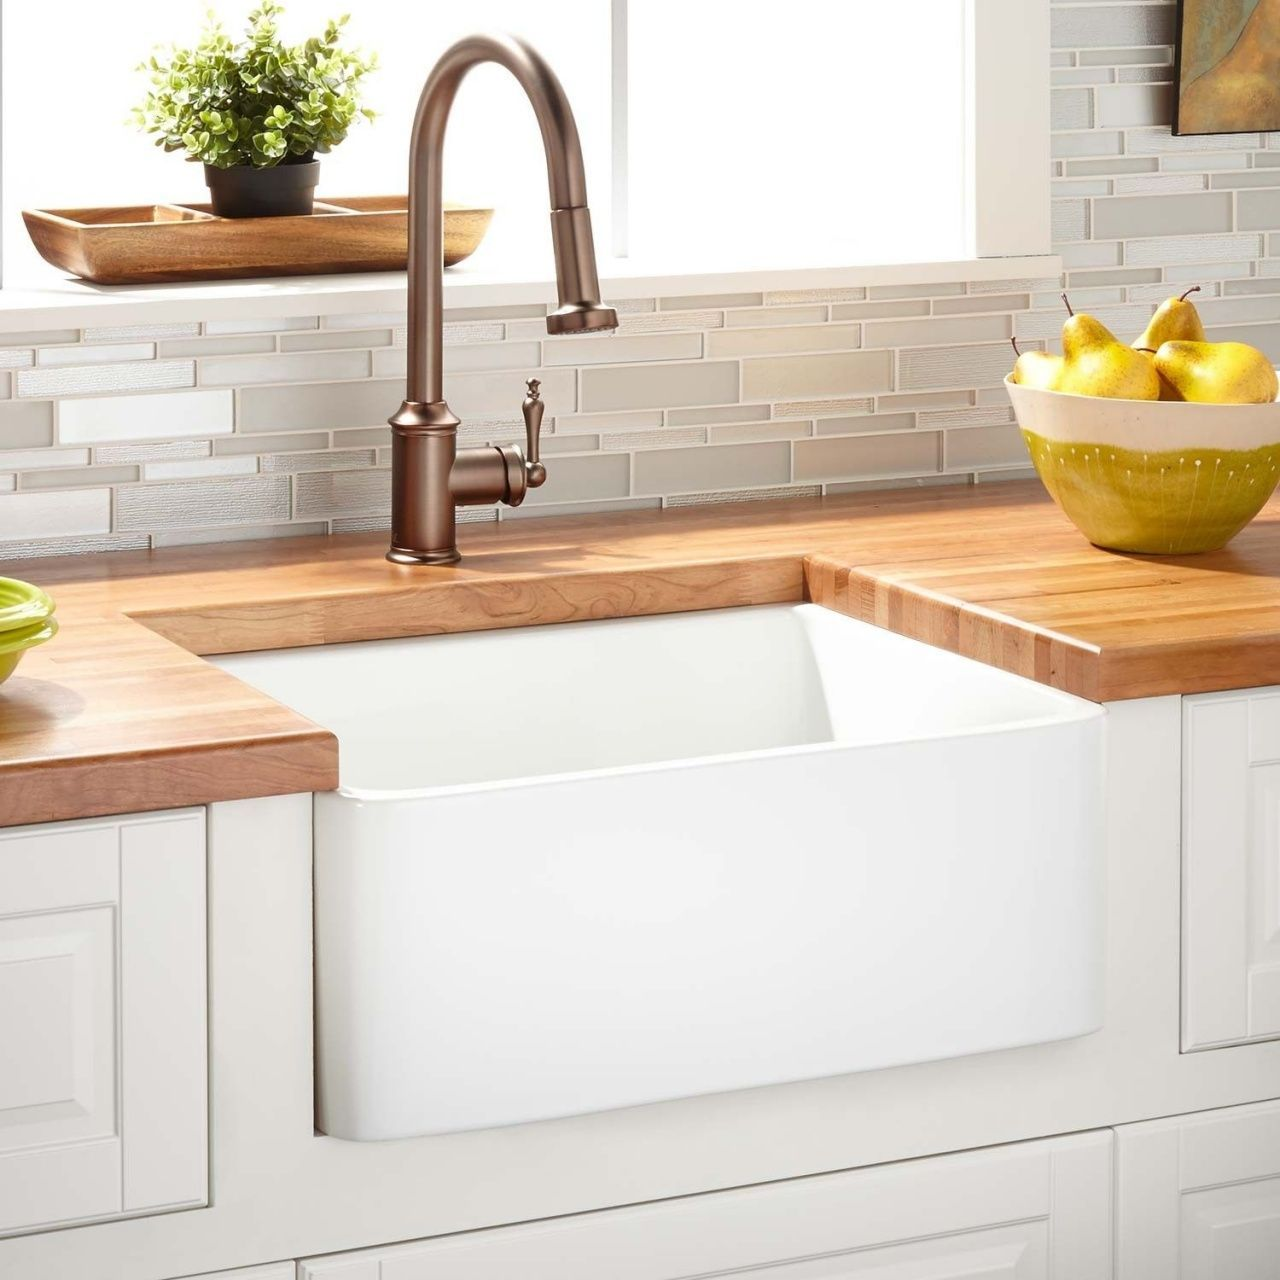 What Size Farmhouse Sink For 36 Inch Cabinet What Size Farmhouse